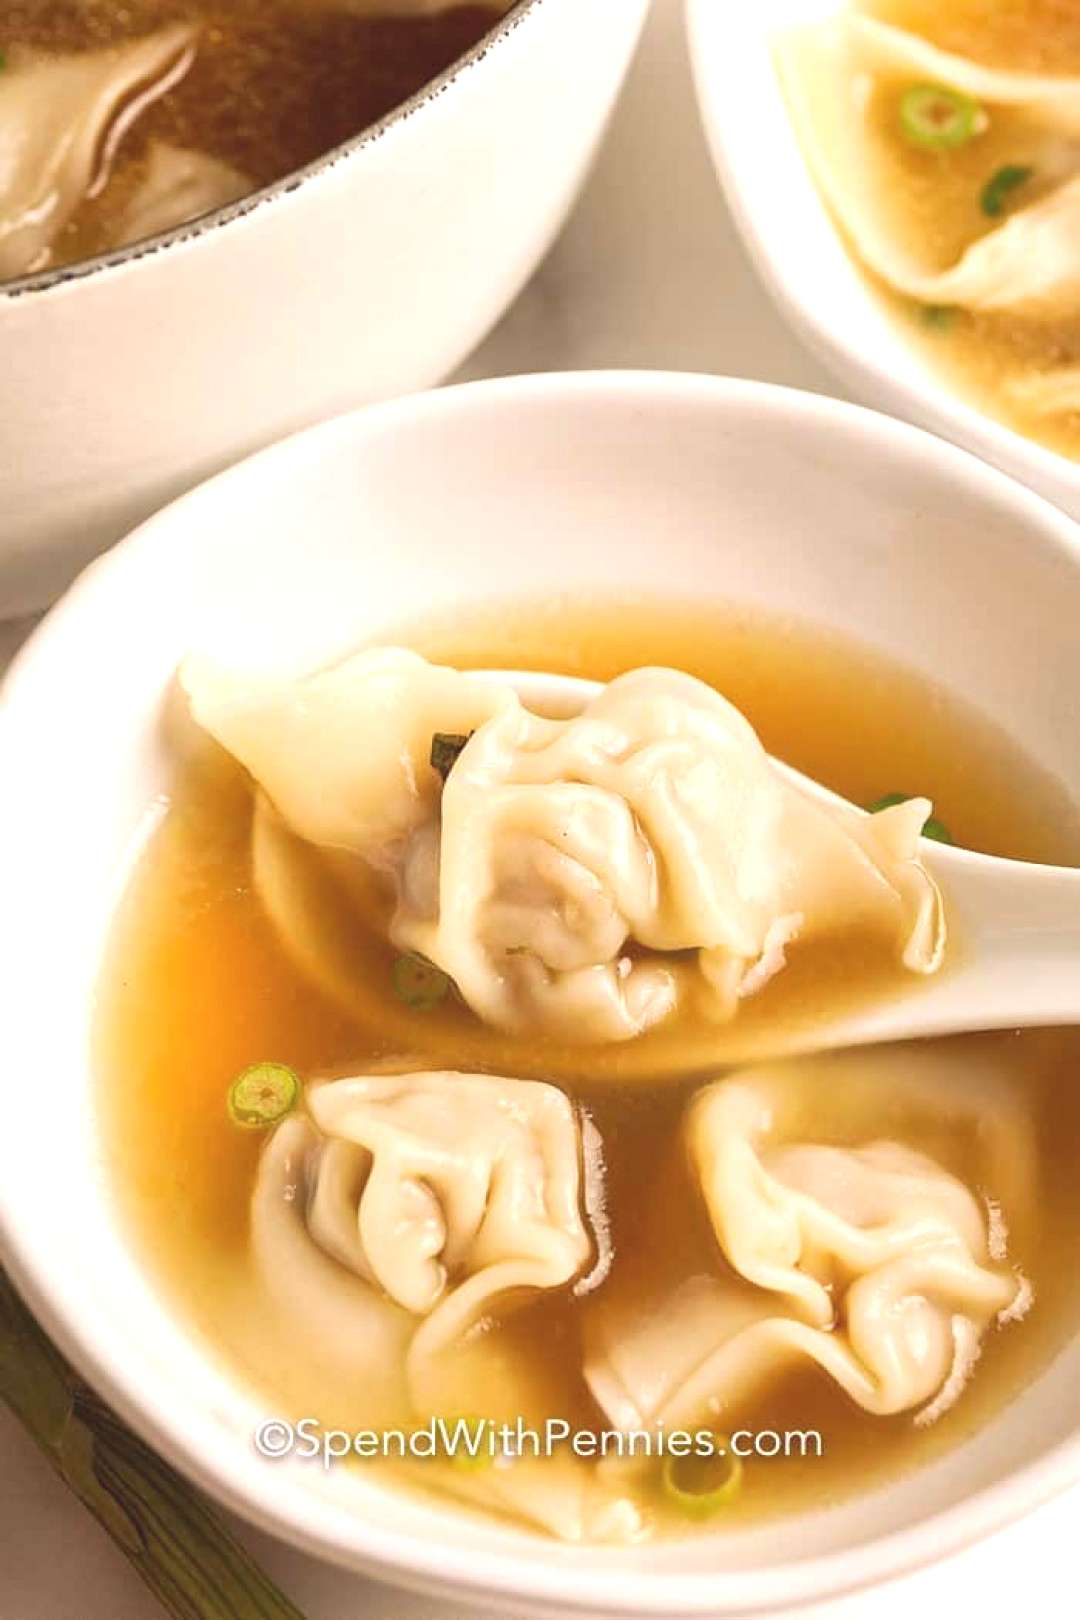 Homemade Wonton Soup & Wontons! - Spend With Pennies Homemade Wonton Soup & Wontons! - Spend With P